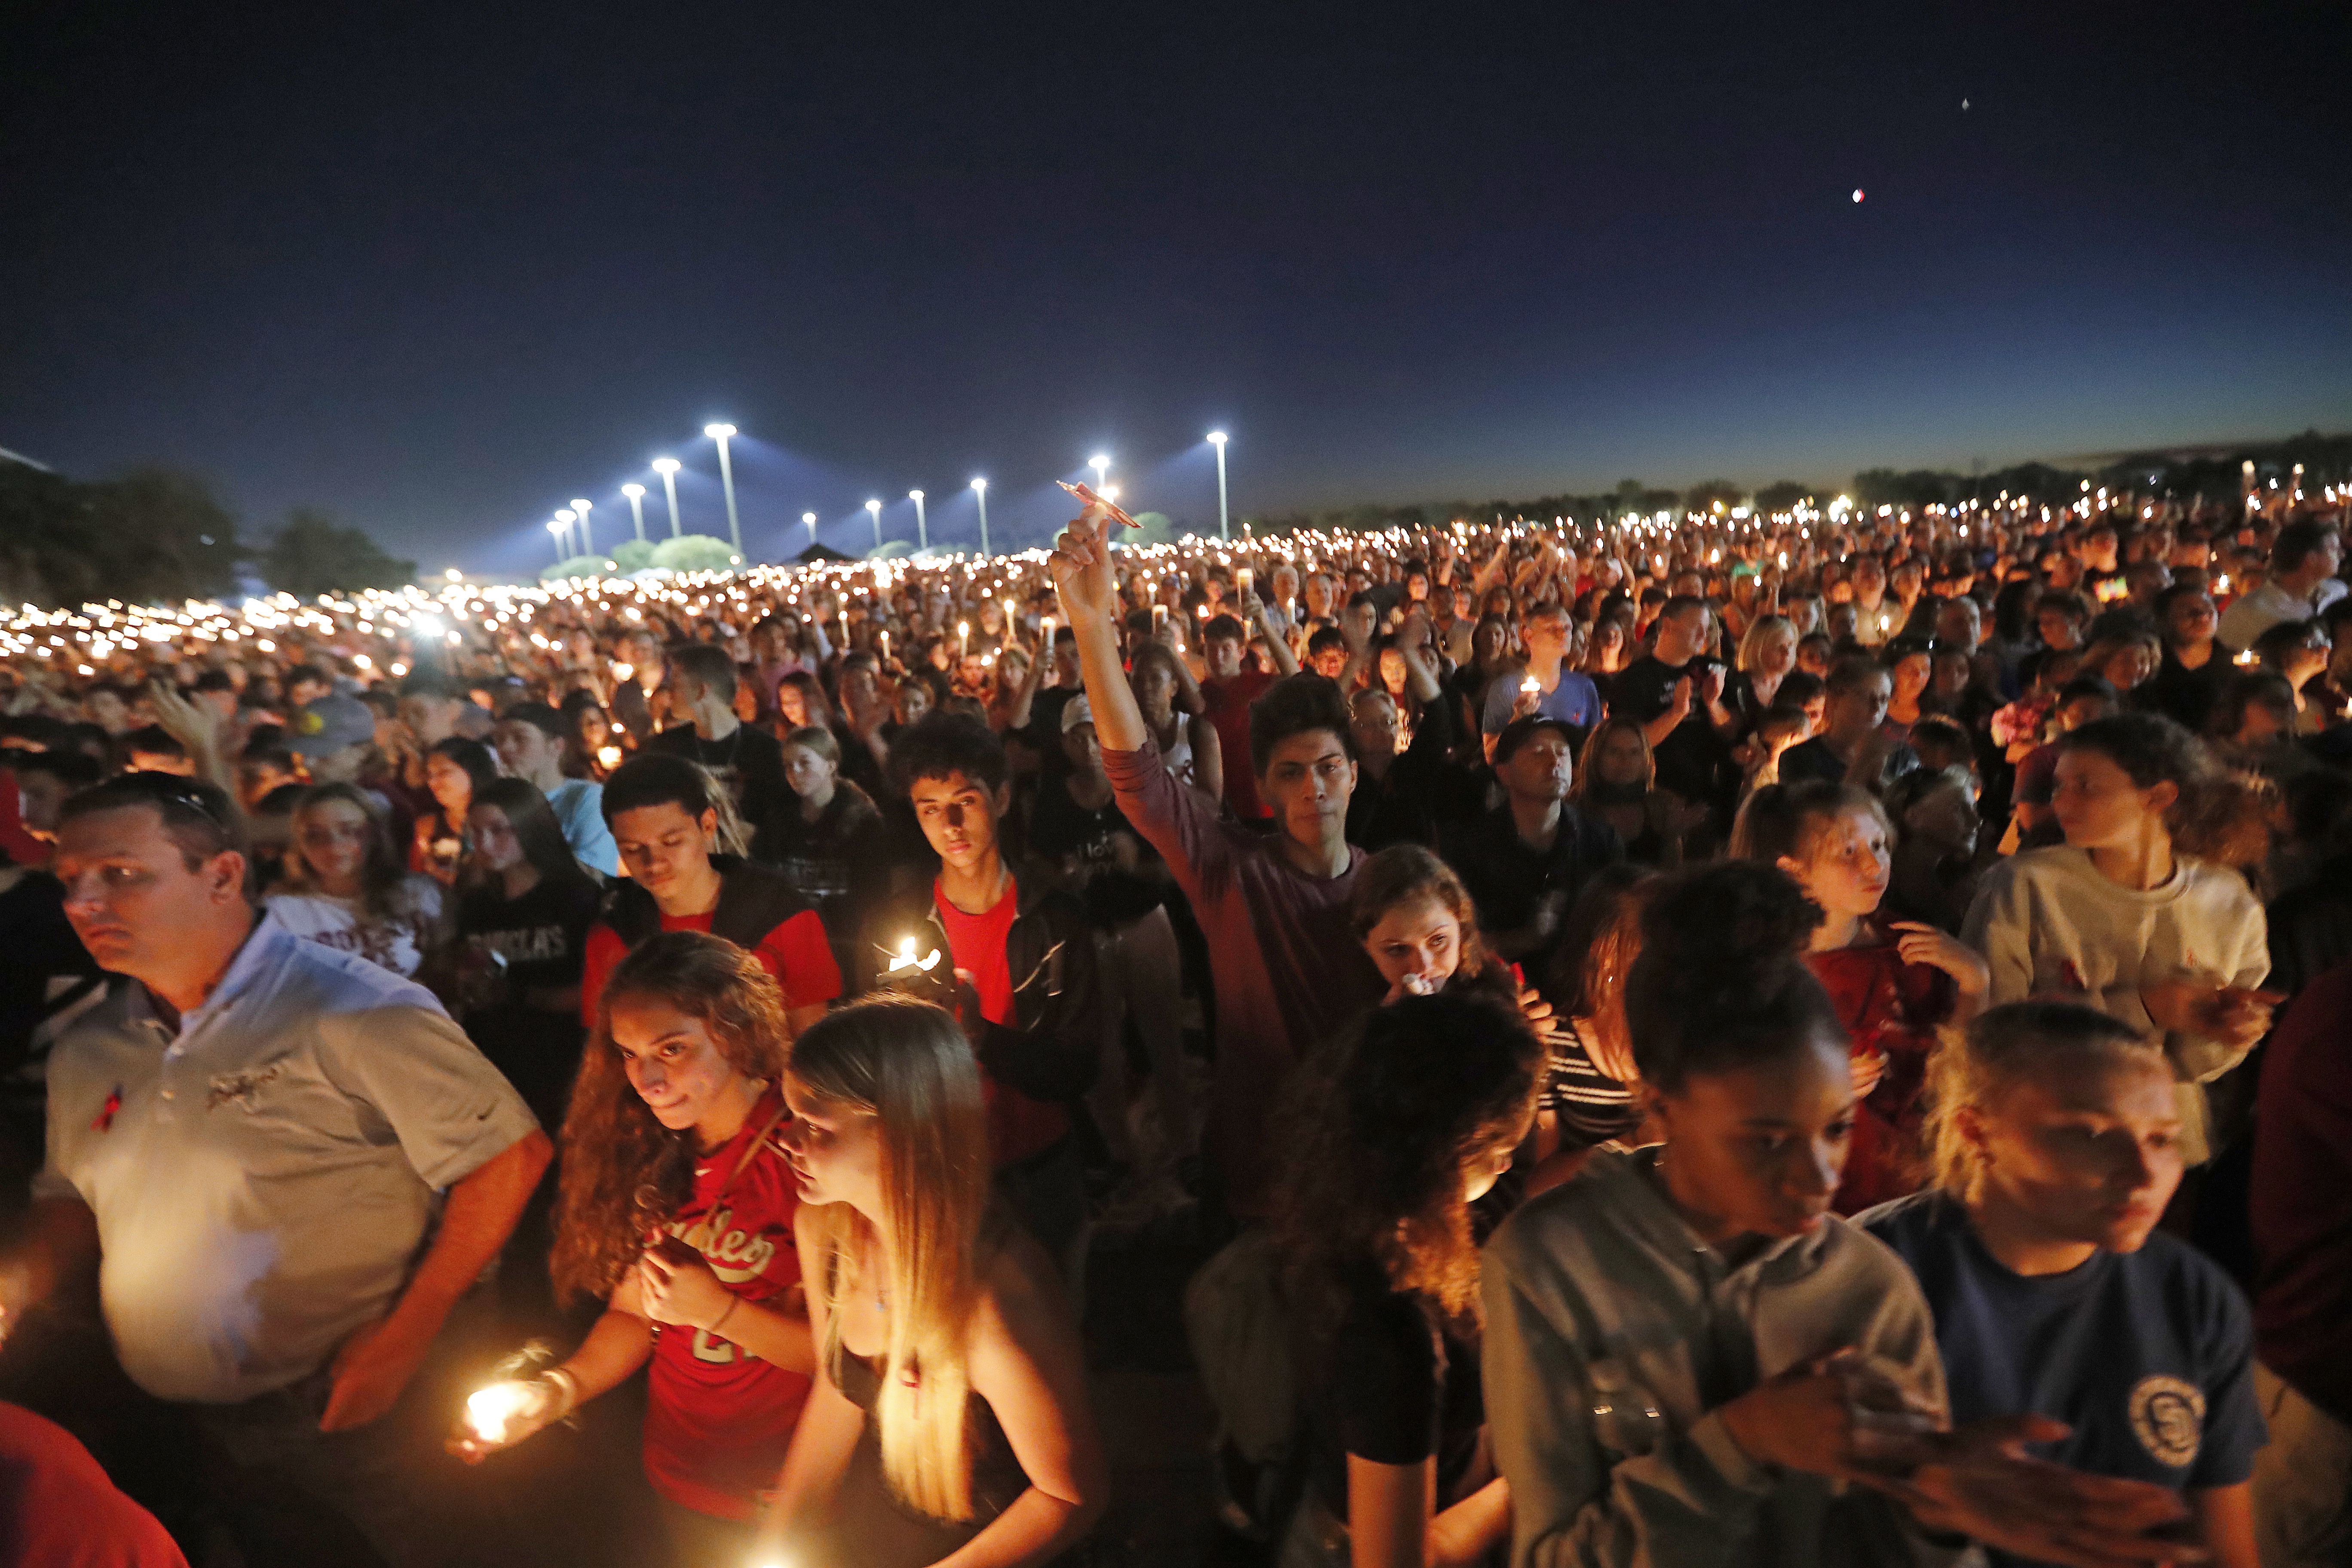 People hoist up their candles during a vigil for the victims of the Wednesday shooting at Marjory Stoneman Douglas High School, in Parkland, Fla., Feb. 15, 2018.